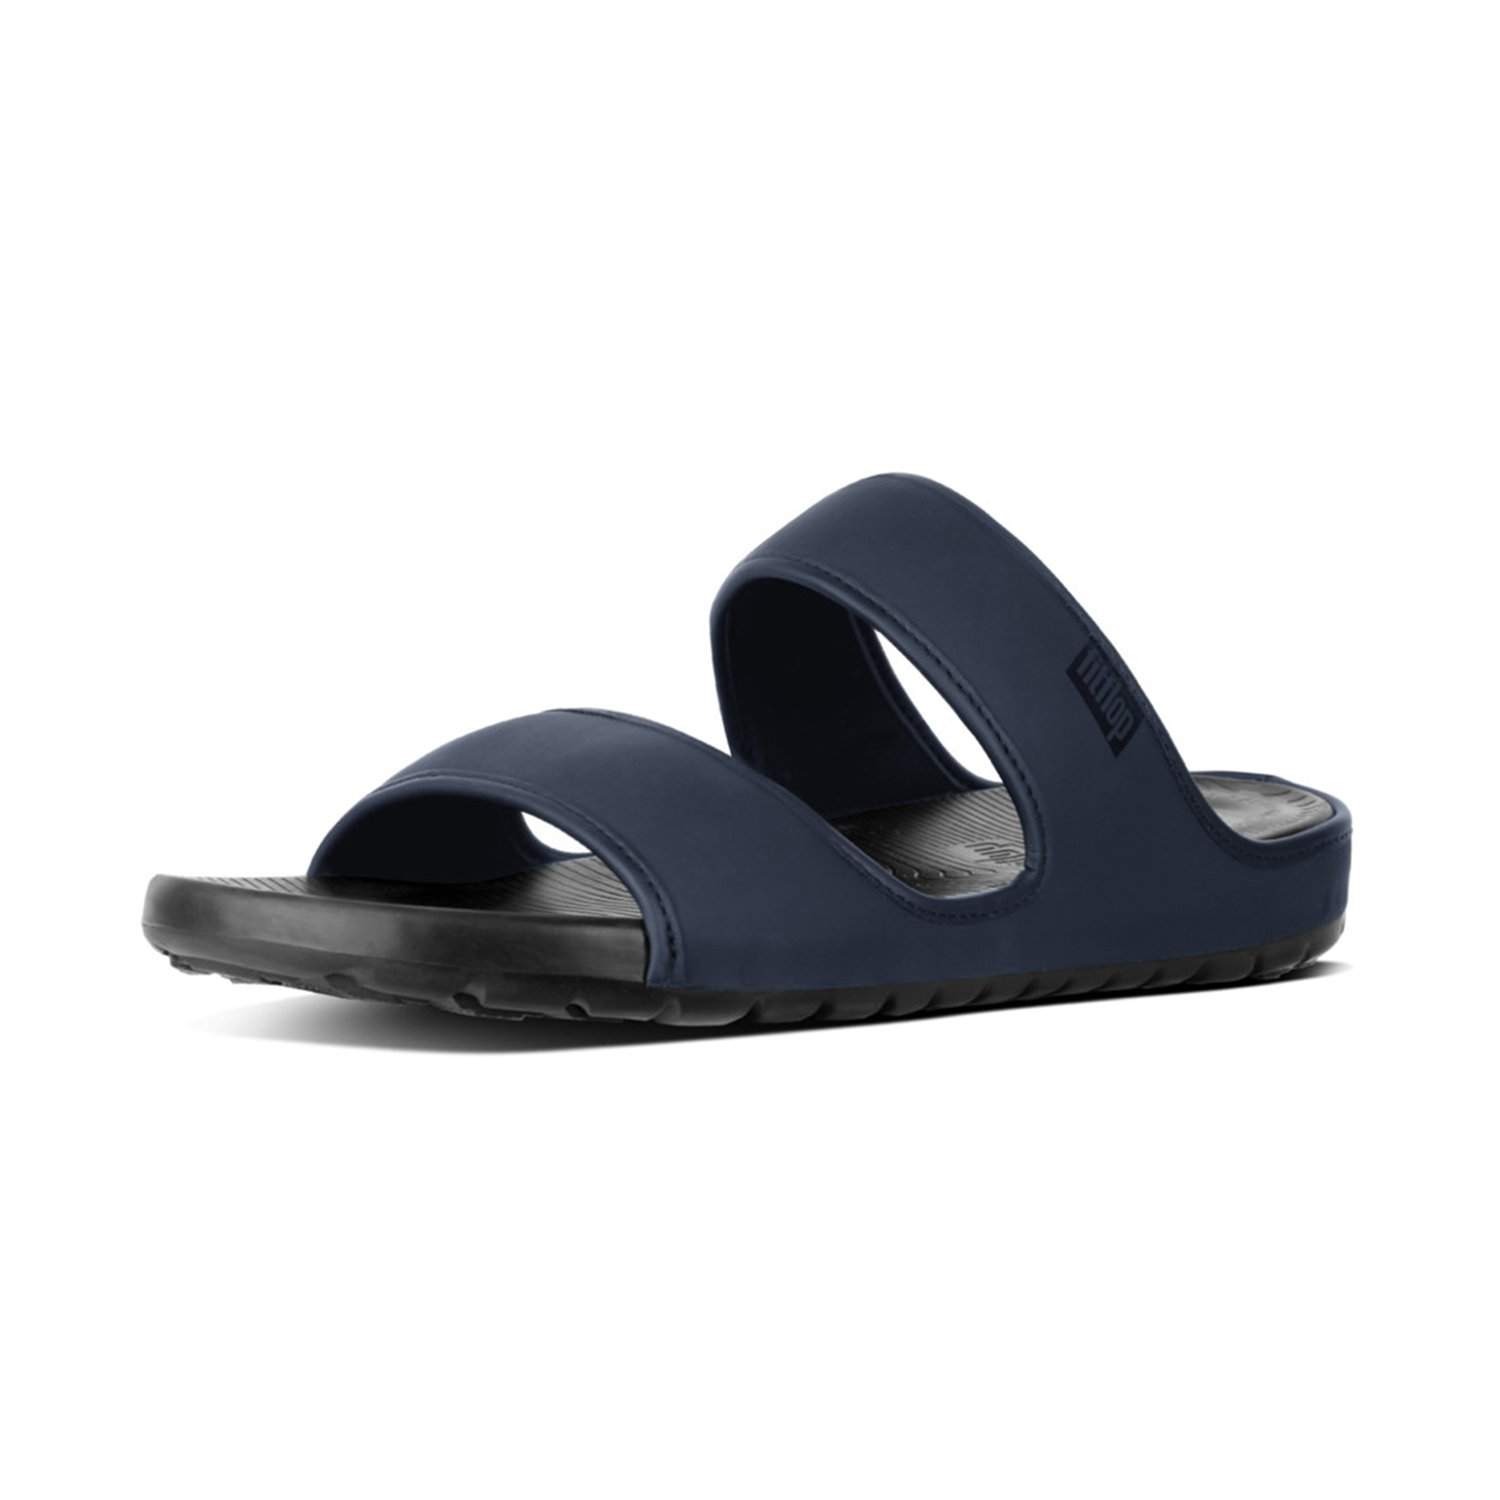 TALLA 43 EU. Fitflop Lido TM Double Slide Sandals In Neoprene, Chanclas para Hombre